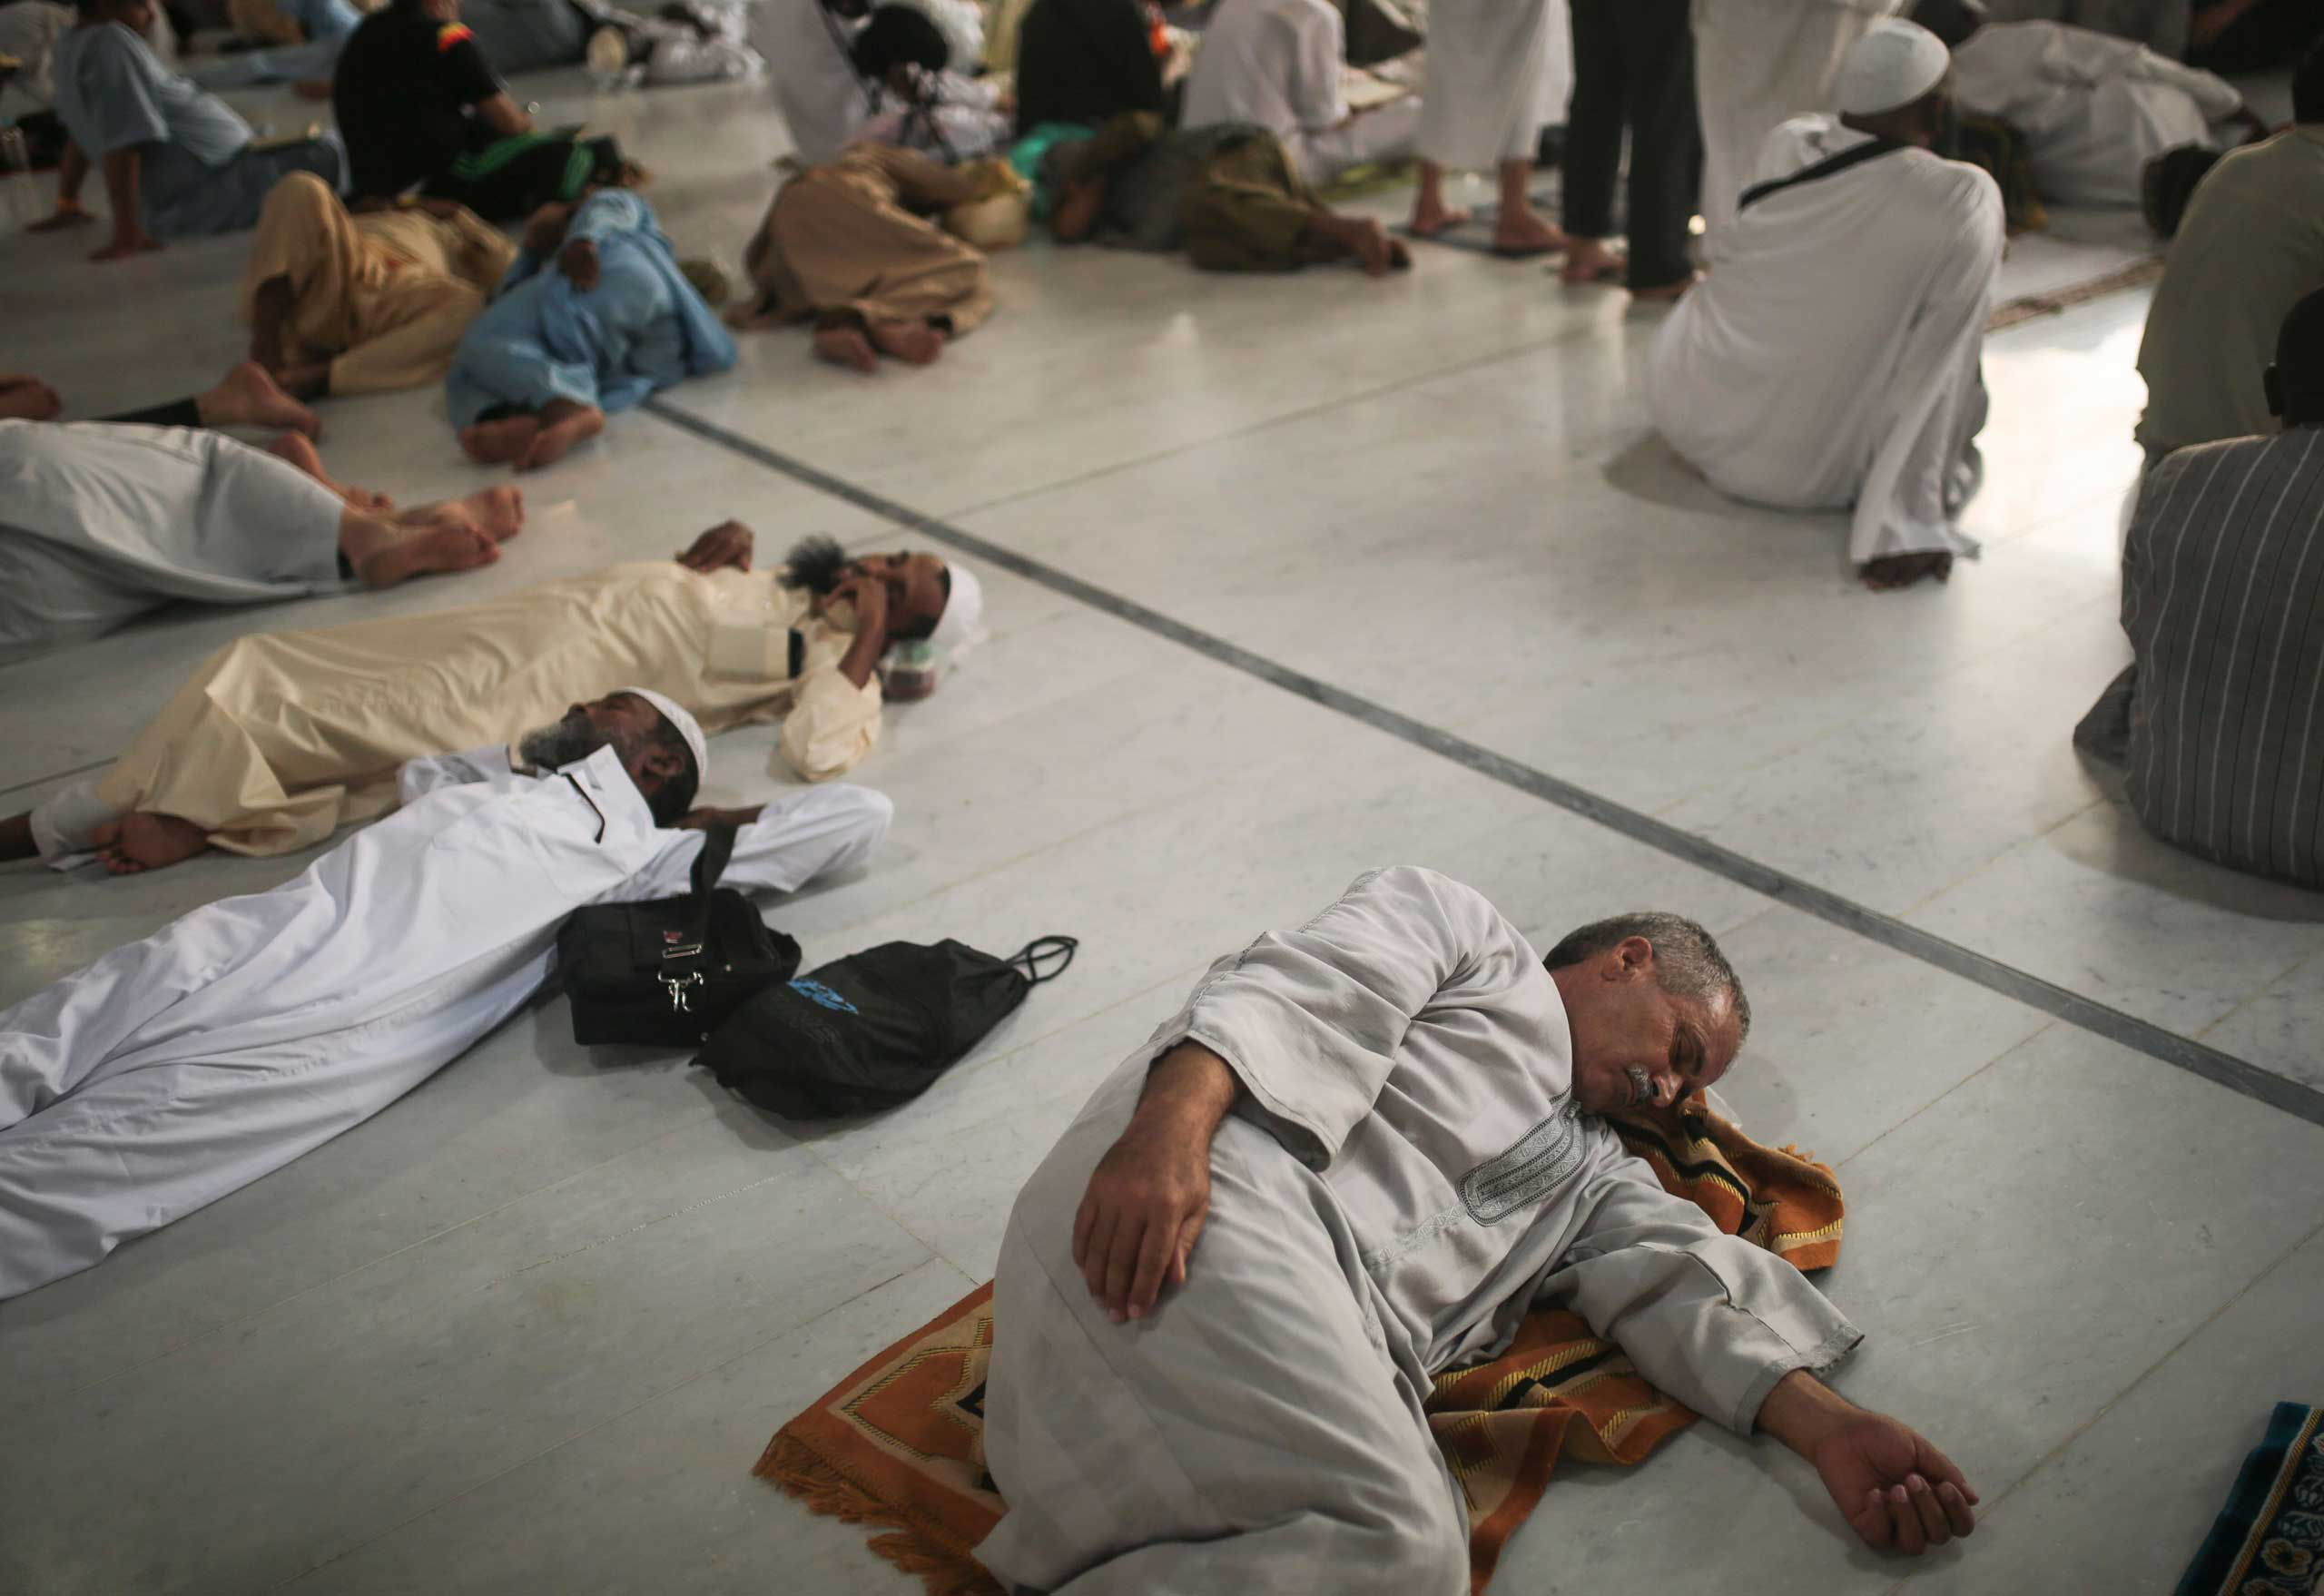 Muslim pilgrims rest inside the Grand Mosque in the holy city of Mecca, on Sept. 20, 2015.